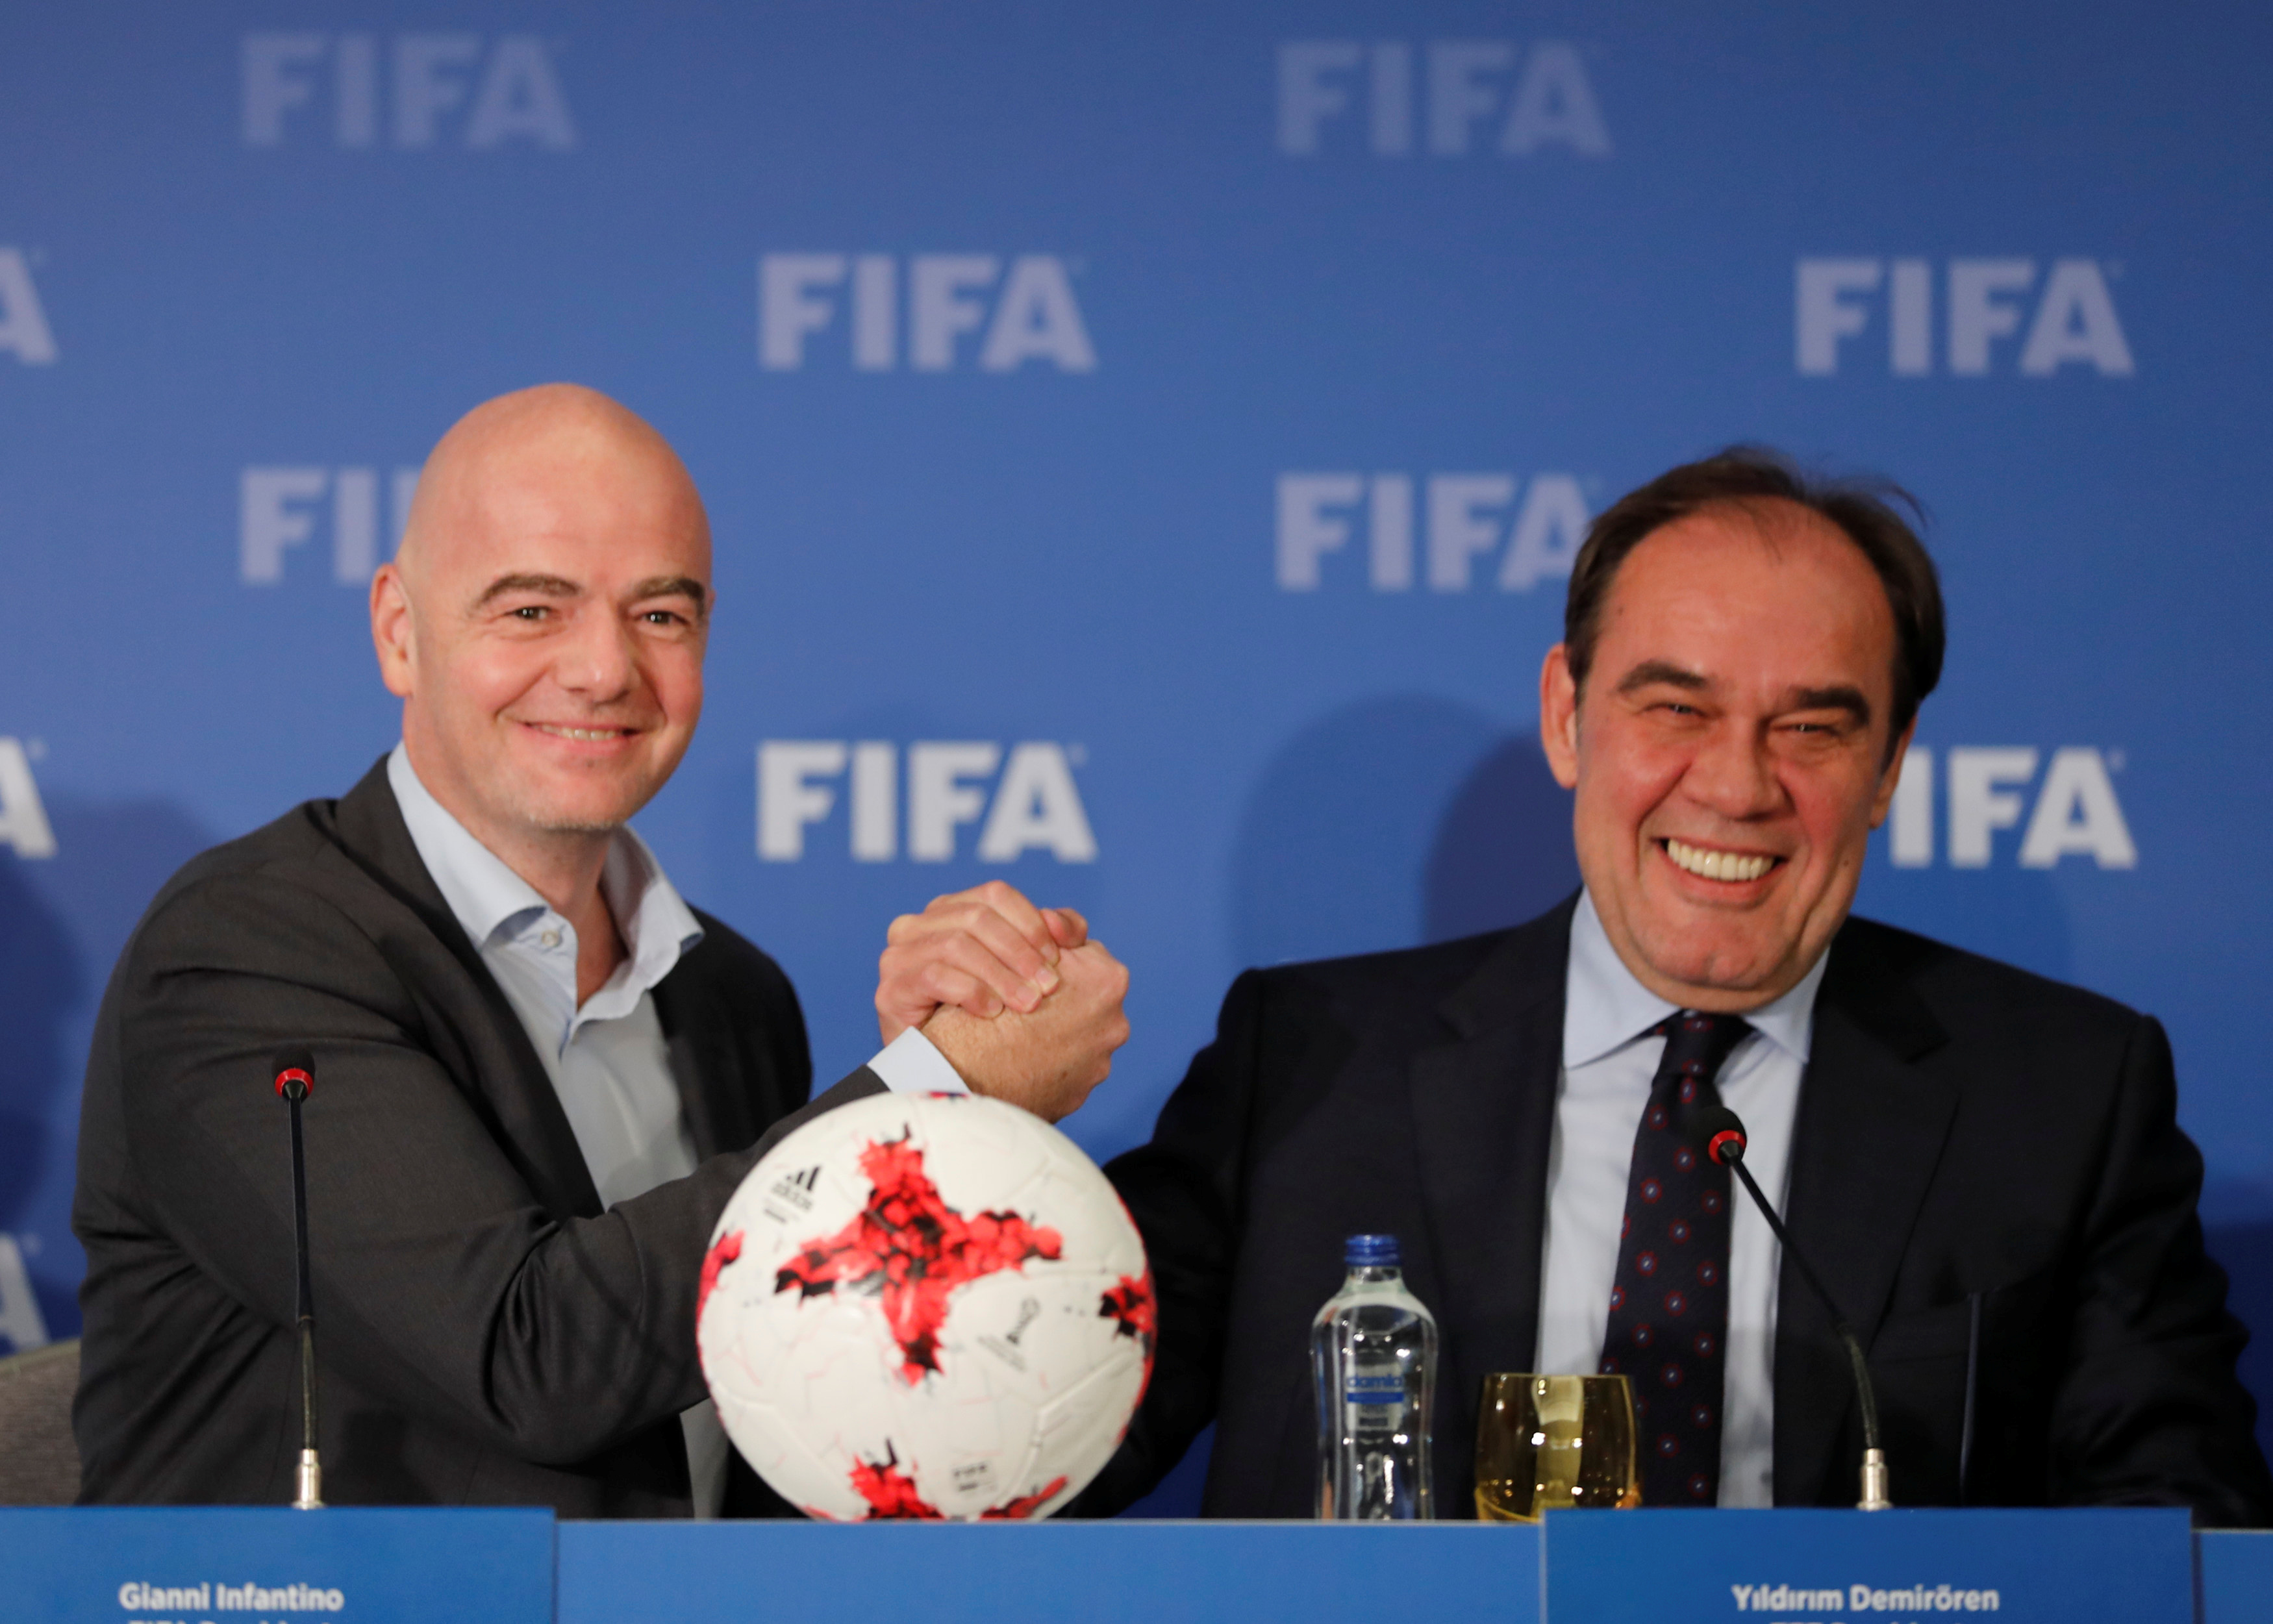 FIFA President Gianni Infantino (L) holds a news conference with Turkish Football Federation (TFF) President Yildirim Demiroren in Istanbul (Reuters)